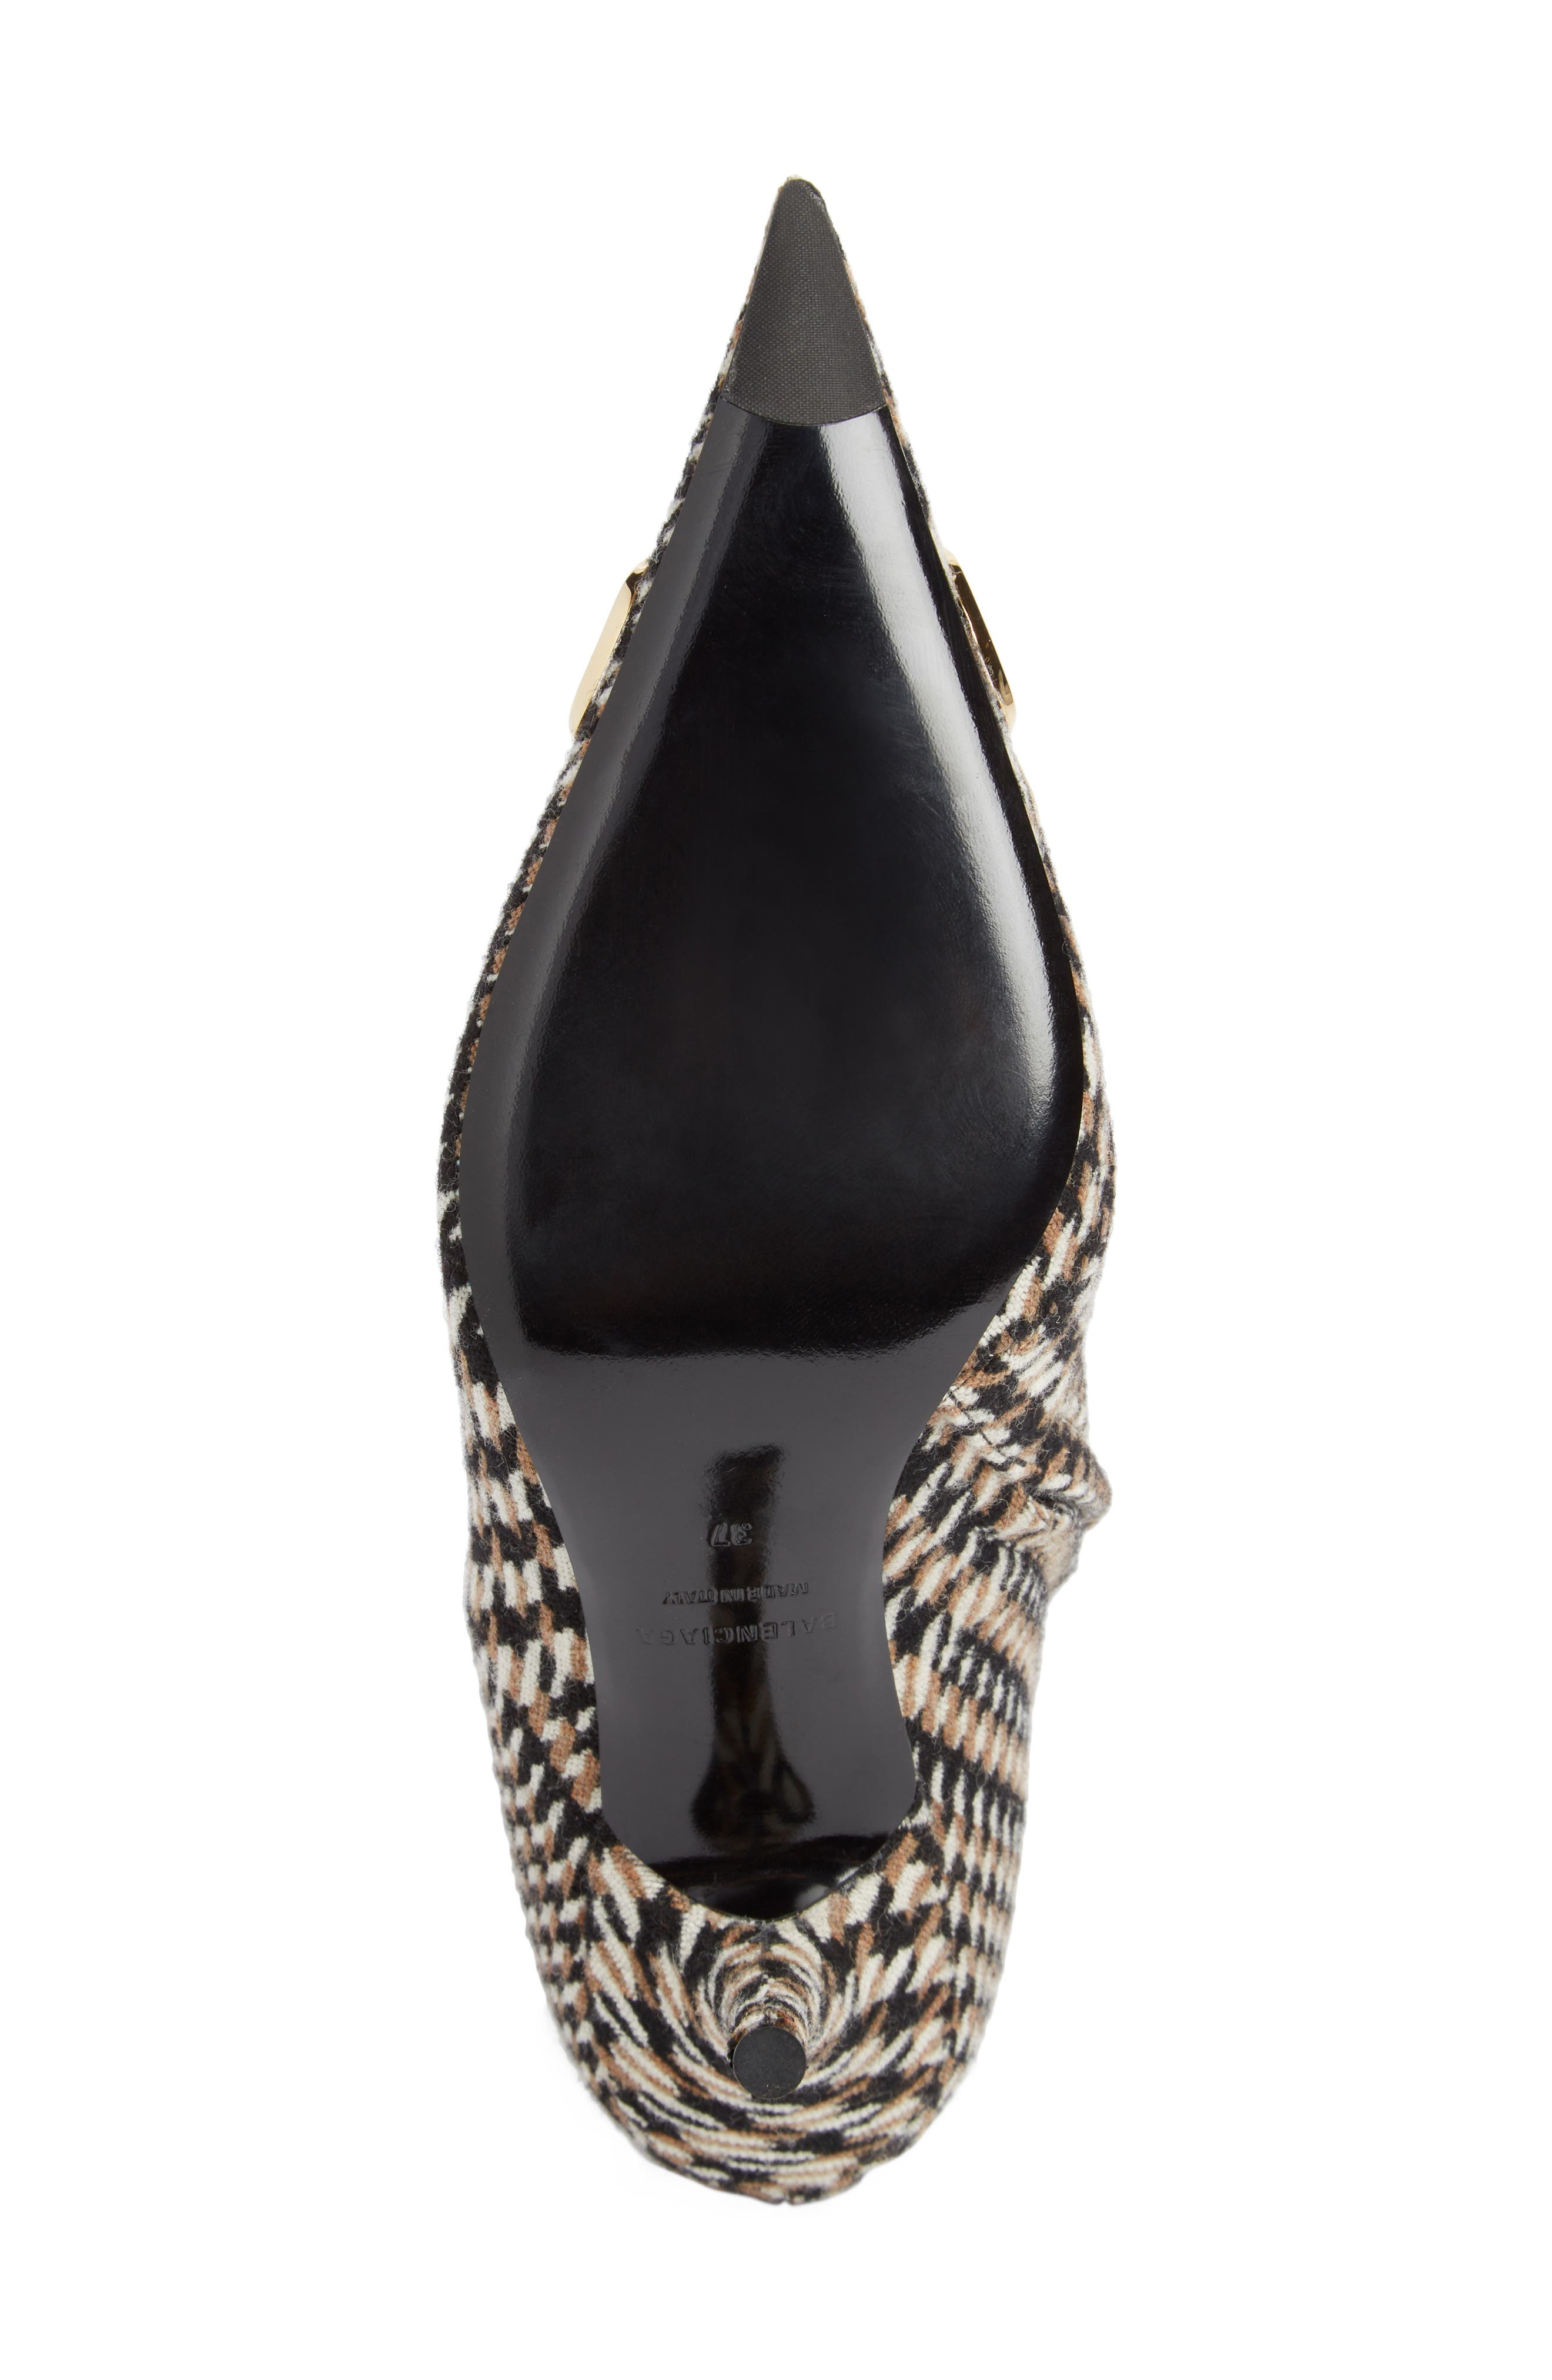 BB Pointy Toe Bootie,                             Alternate thumbnail 5, color,                             BLACK/ WHITE/ CAMEL